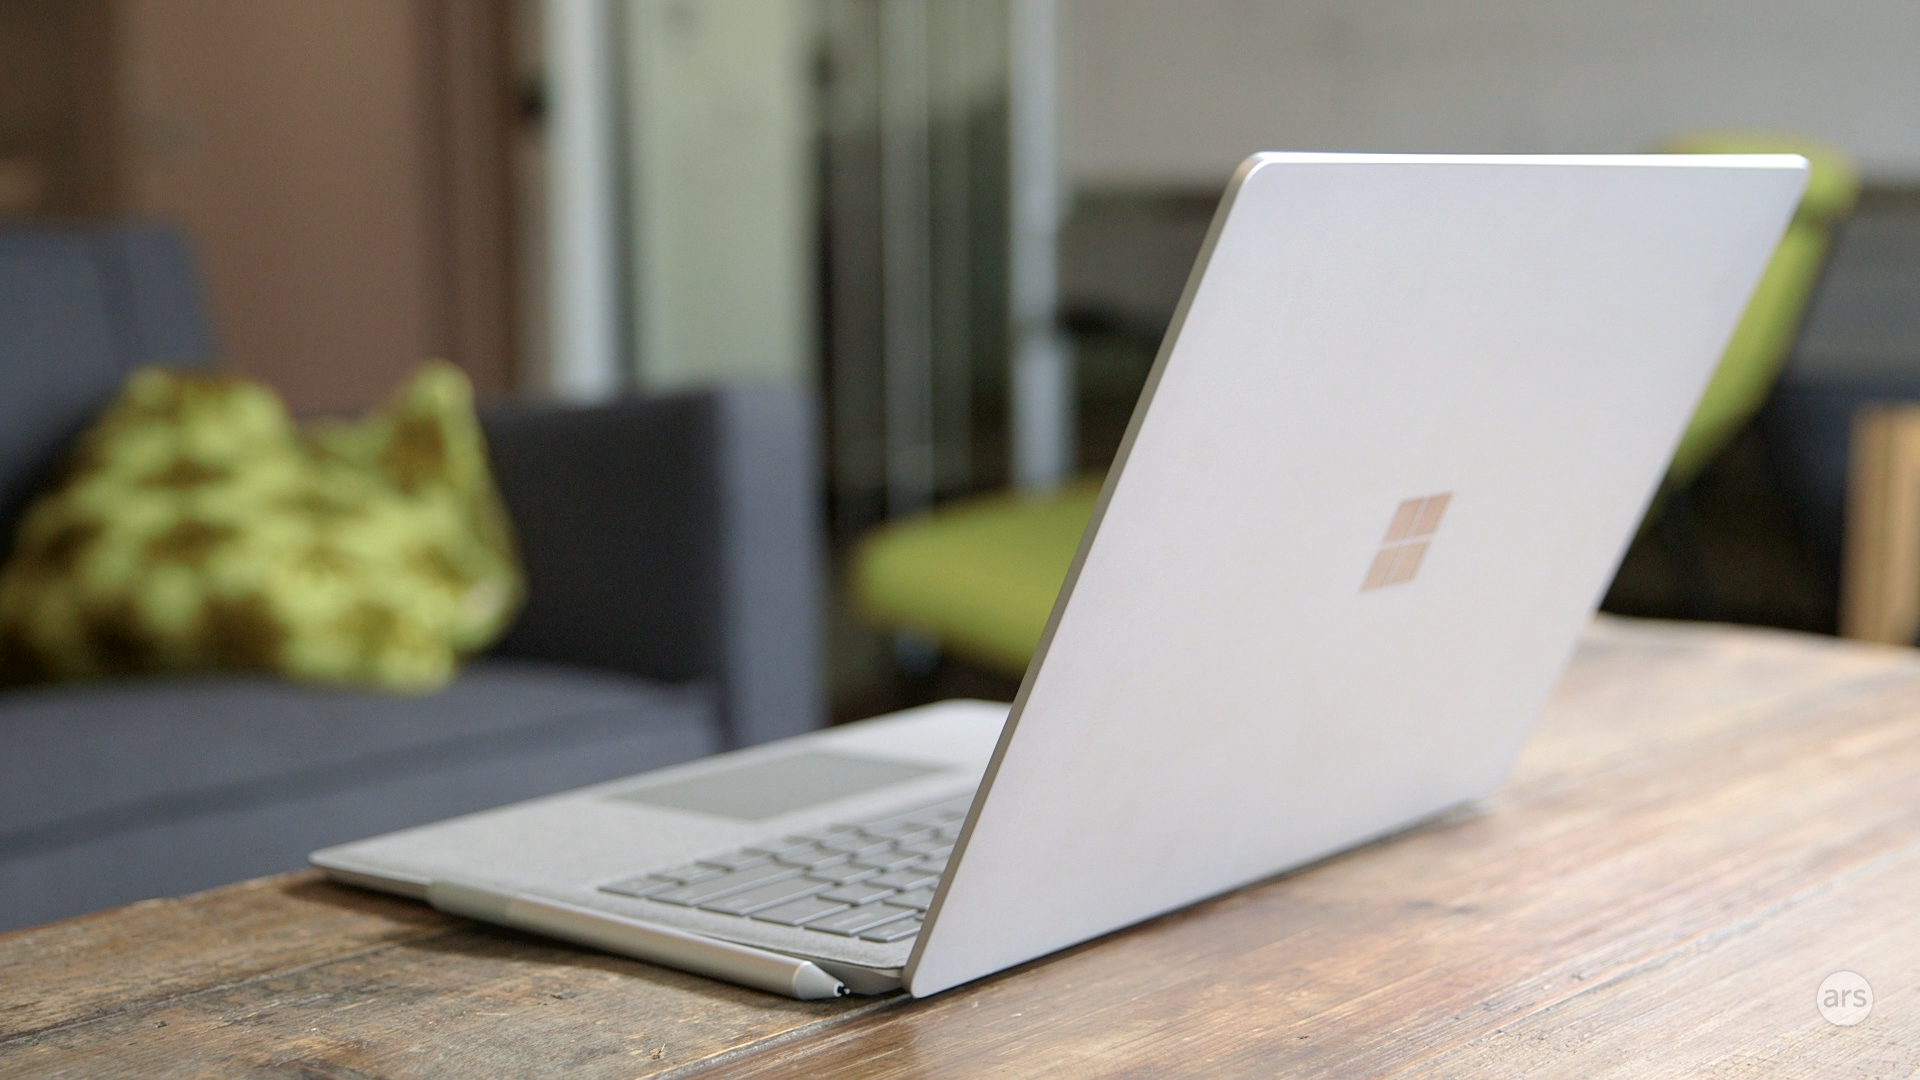 microsoft surface laptop 1st generation review